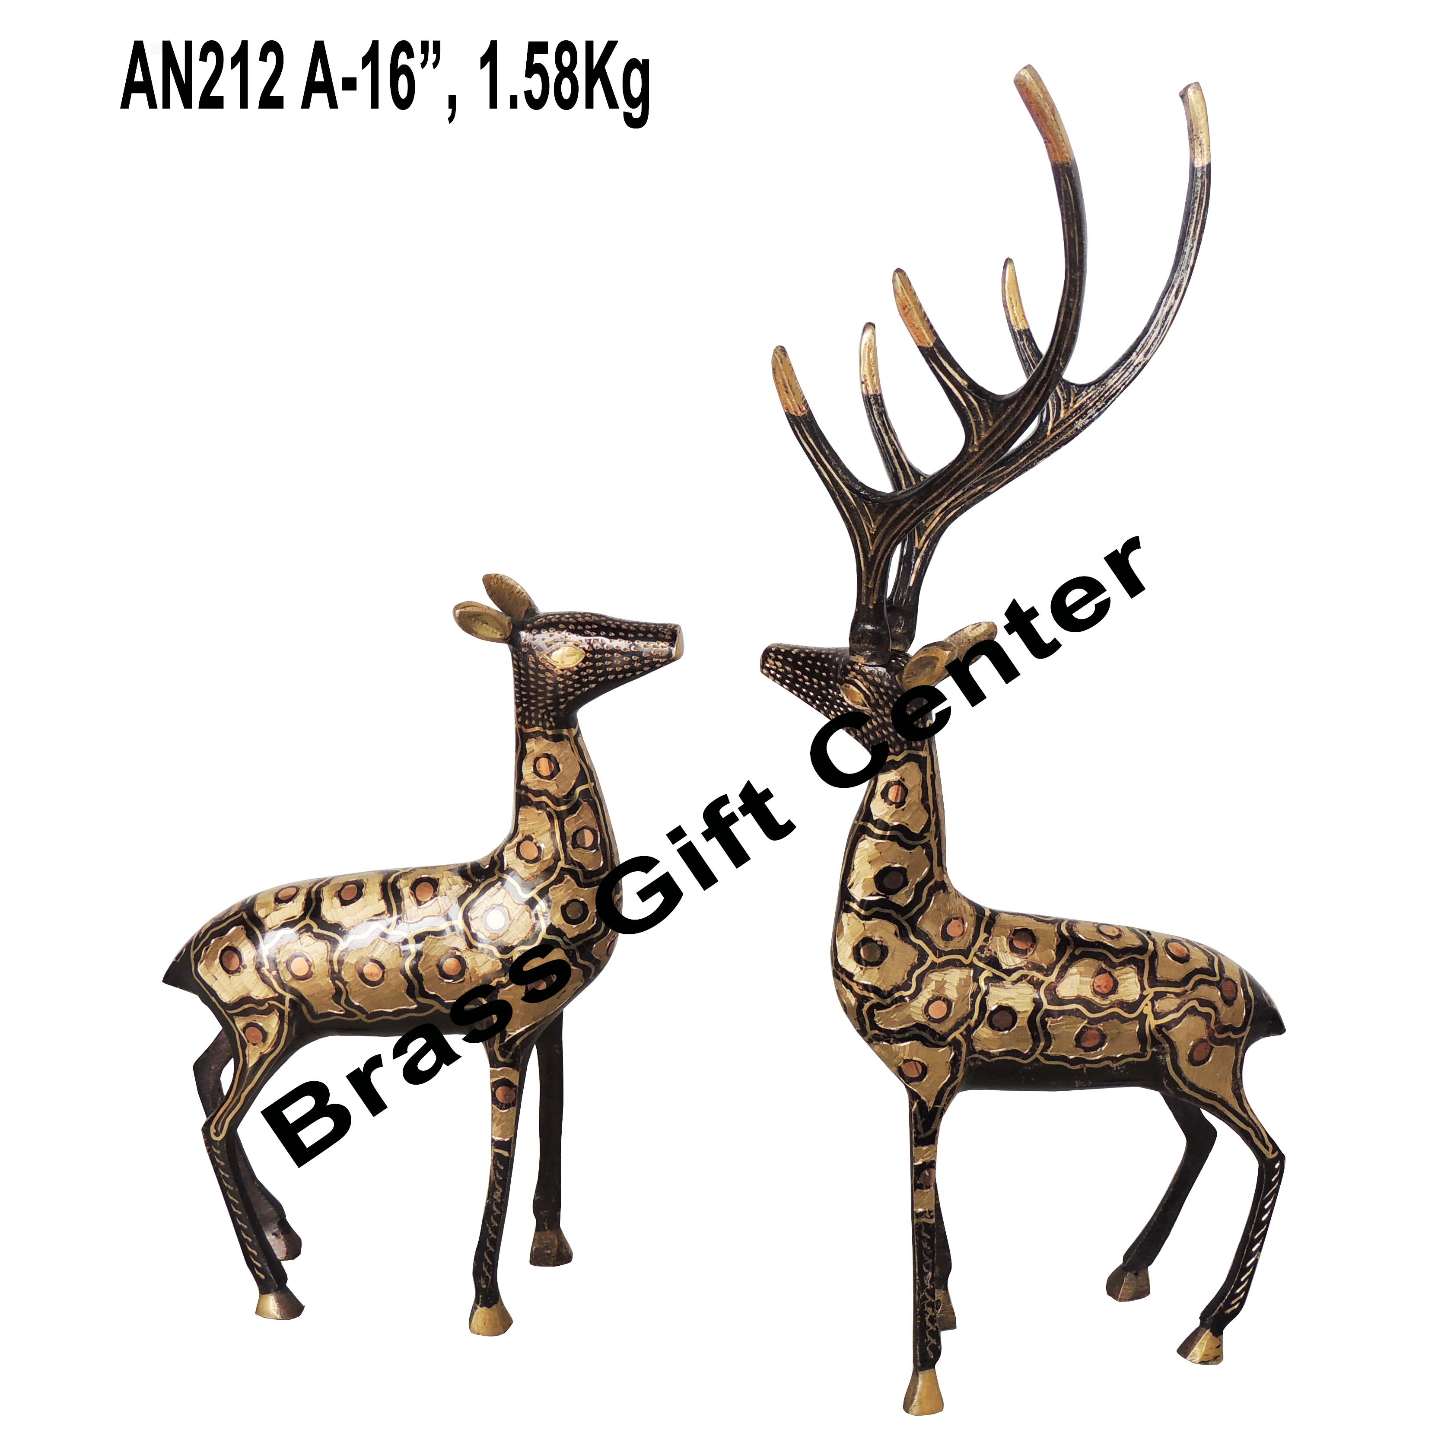 Brass Showpiece Deer Pair Statue With Black Finish, Height 16 Inch AN212 A